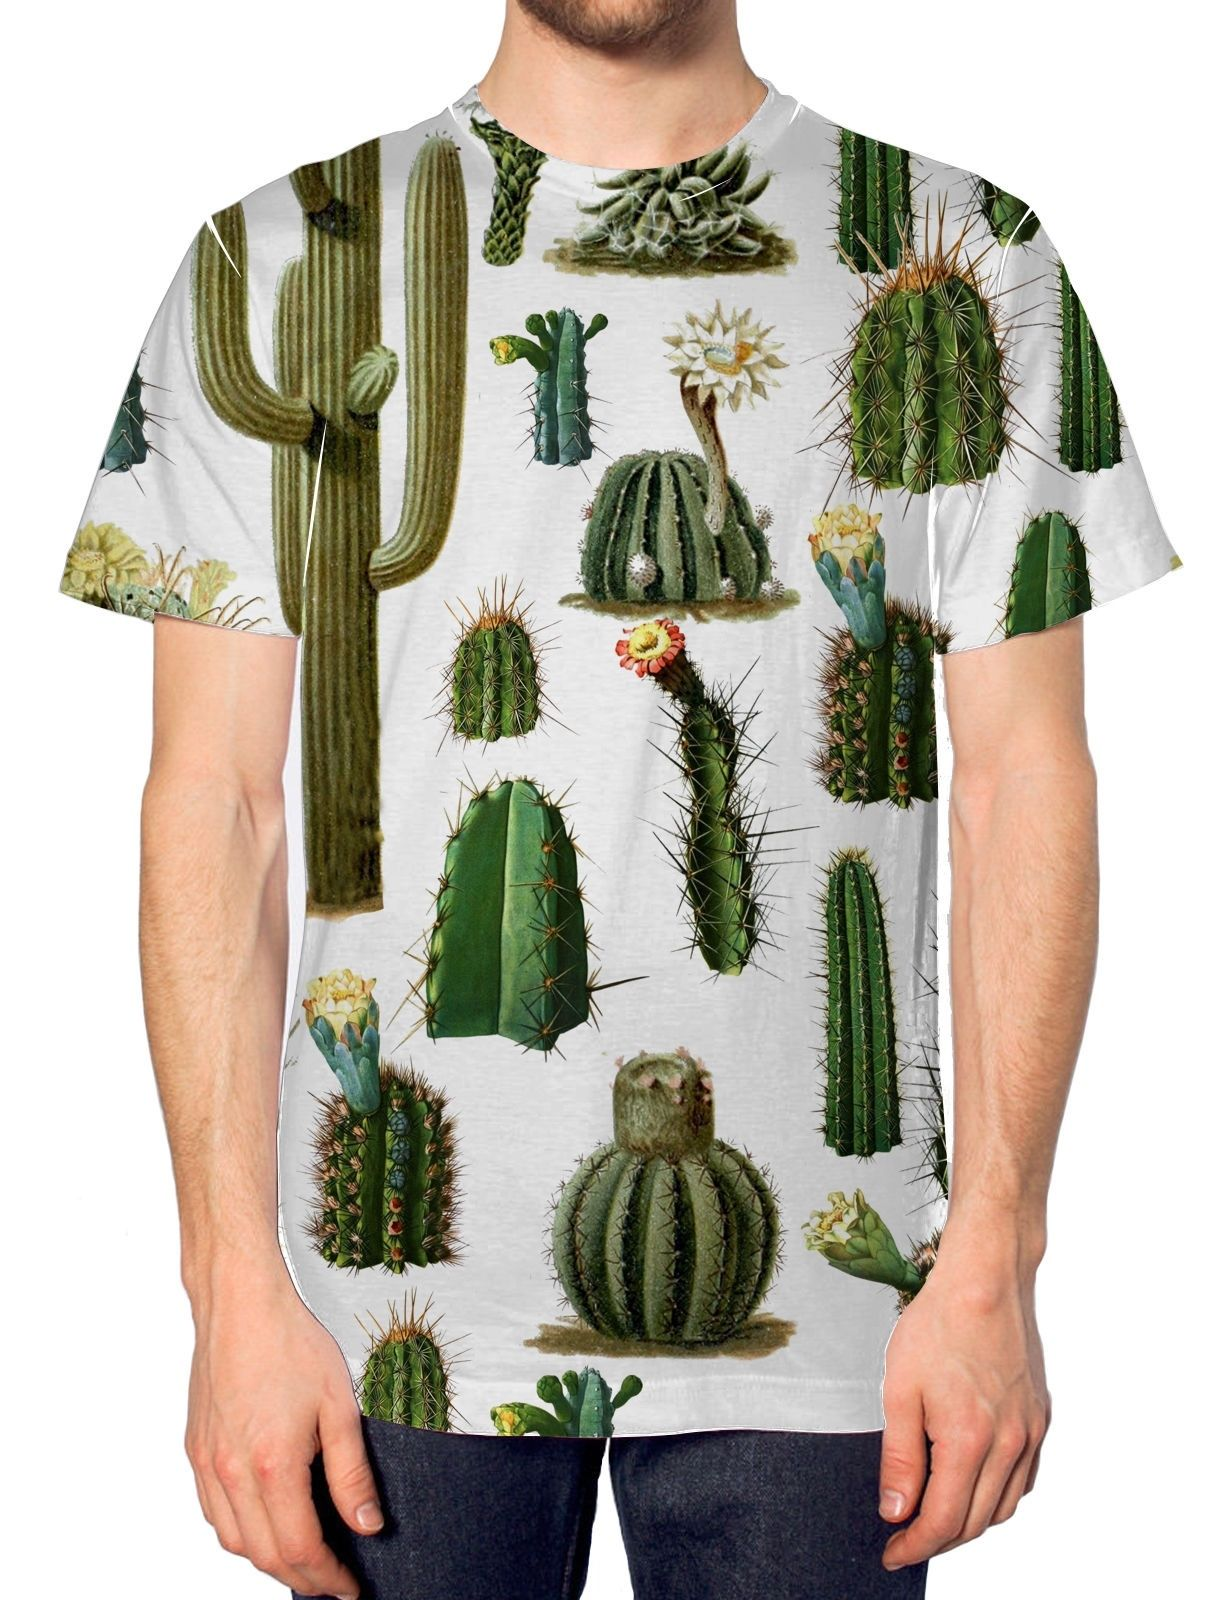 0d199bf478e6 Cactus All Over Fashion T Shirt Tumblr Hipser Style Mens Design Summer  Autumn